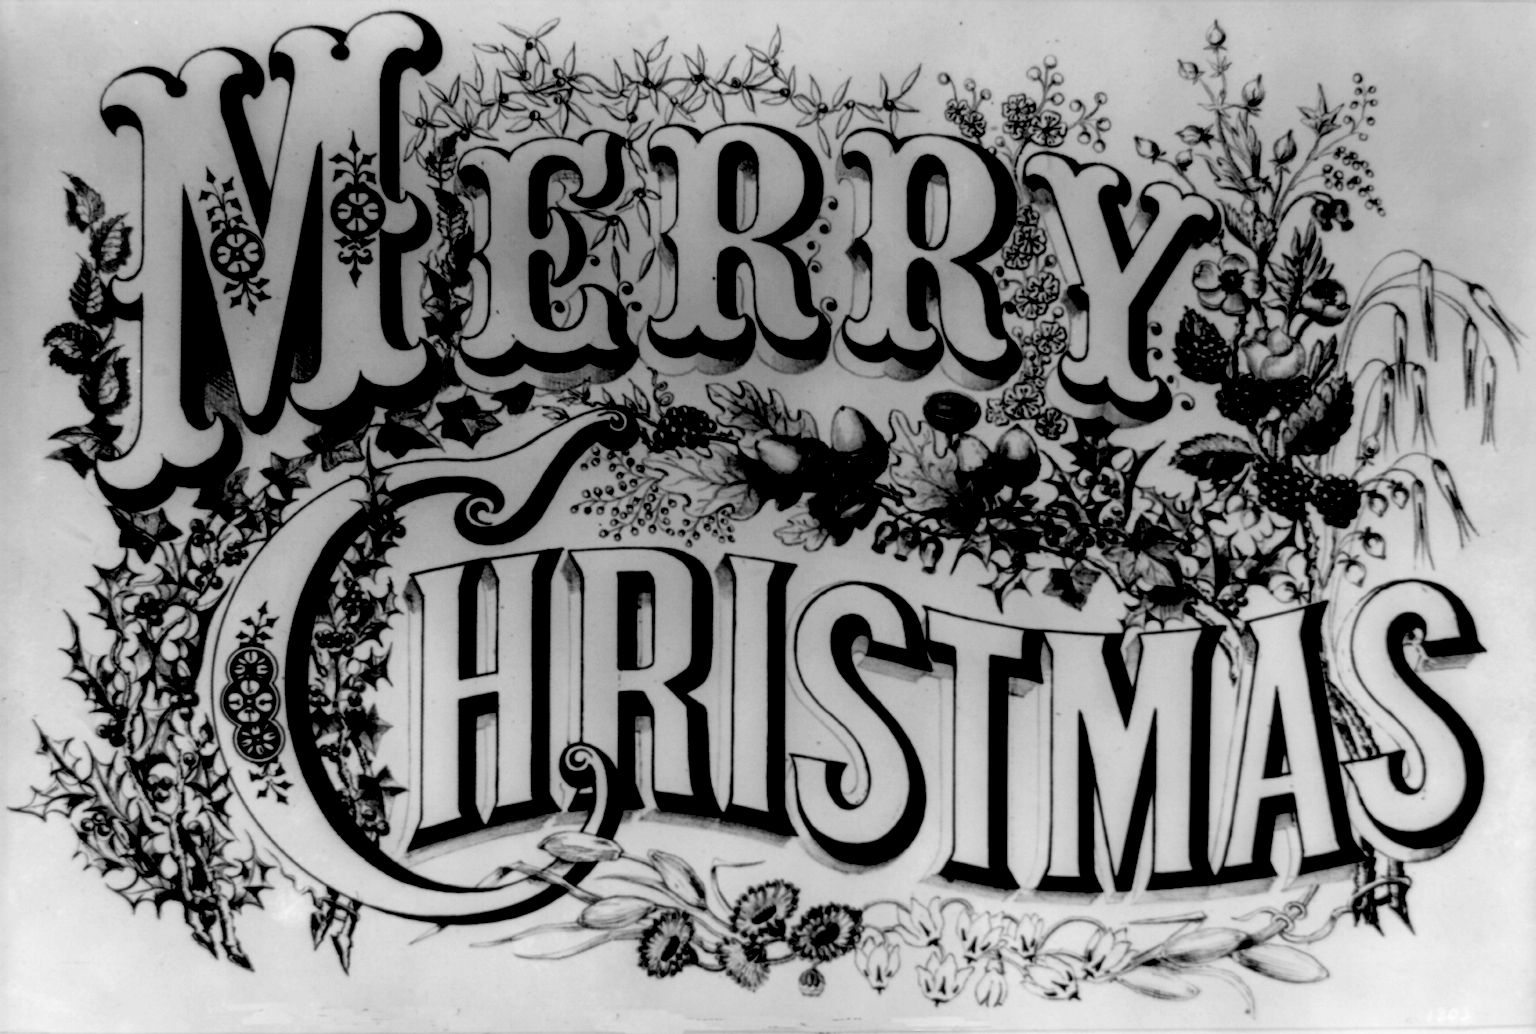 merry-christmas-black-and-white-image_1356340611.png_1536x1034